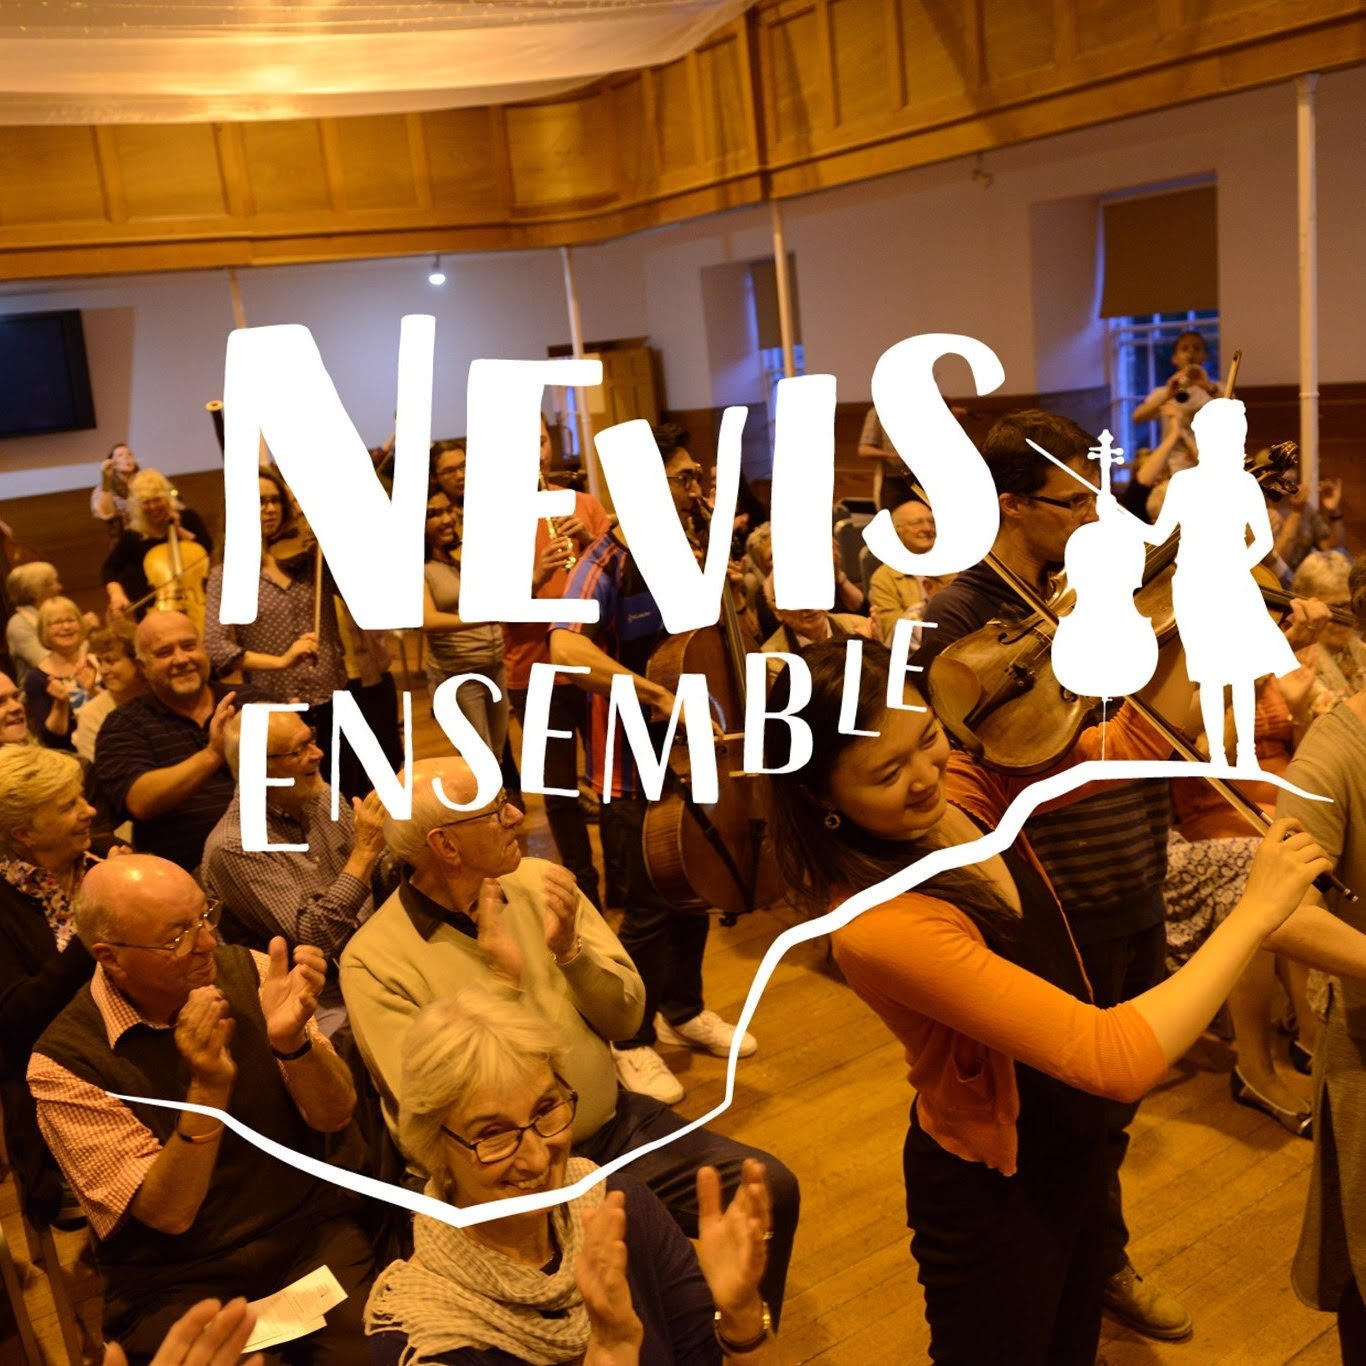 nevis ensemble logo against background of people at an event.